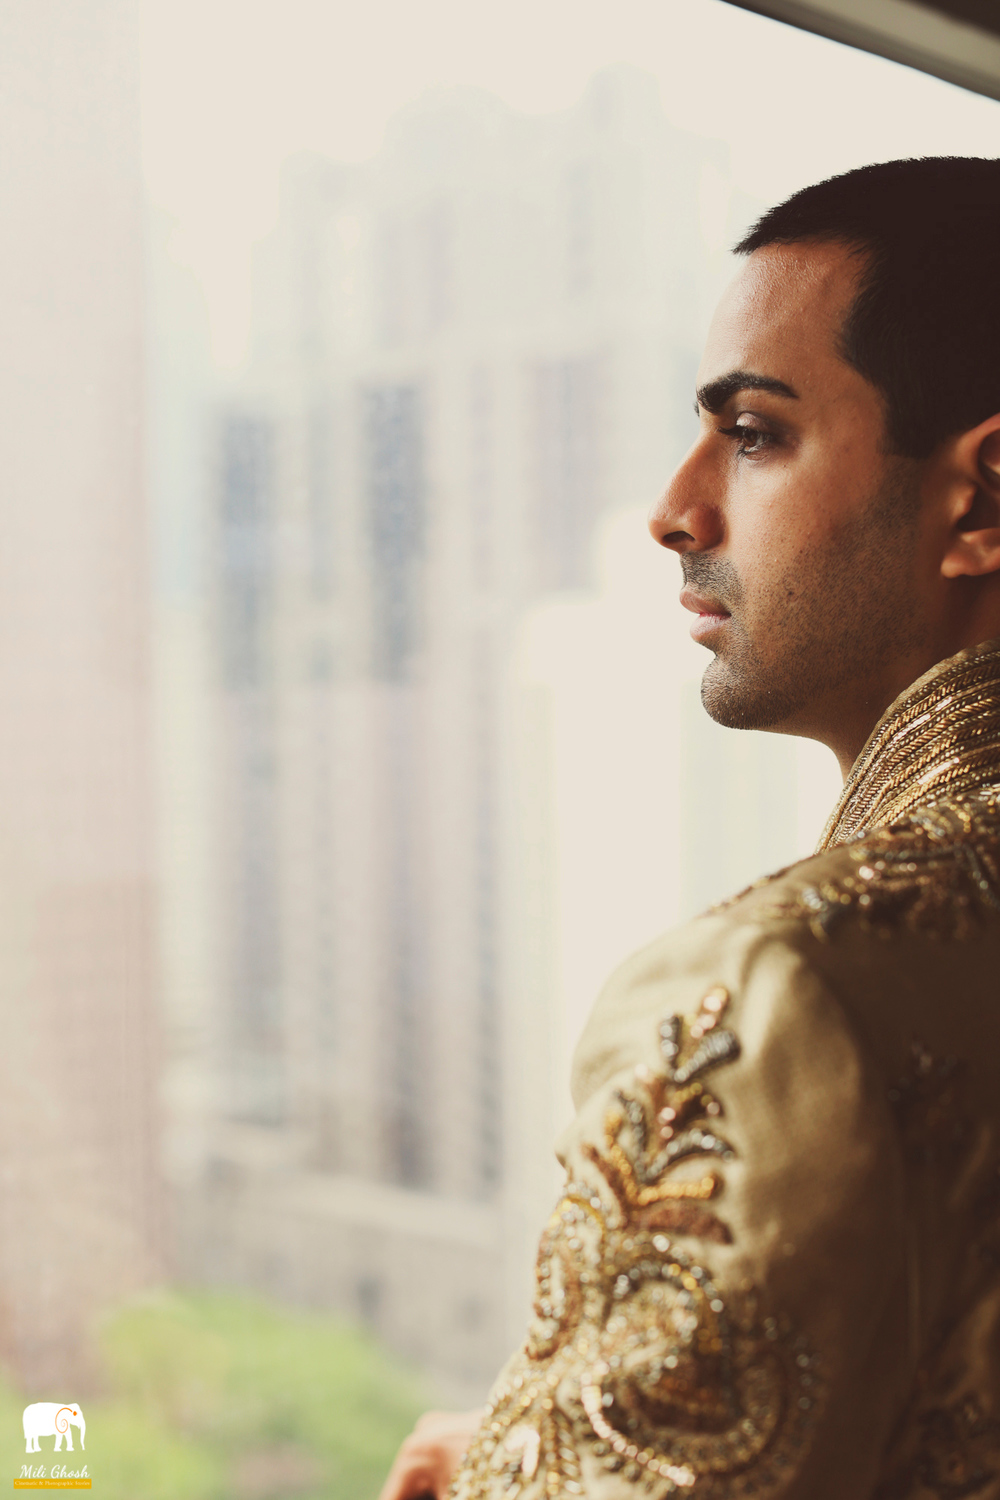 HANDSOME INDIAN GROOM LOOKING OUT WINDOW